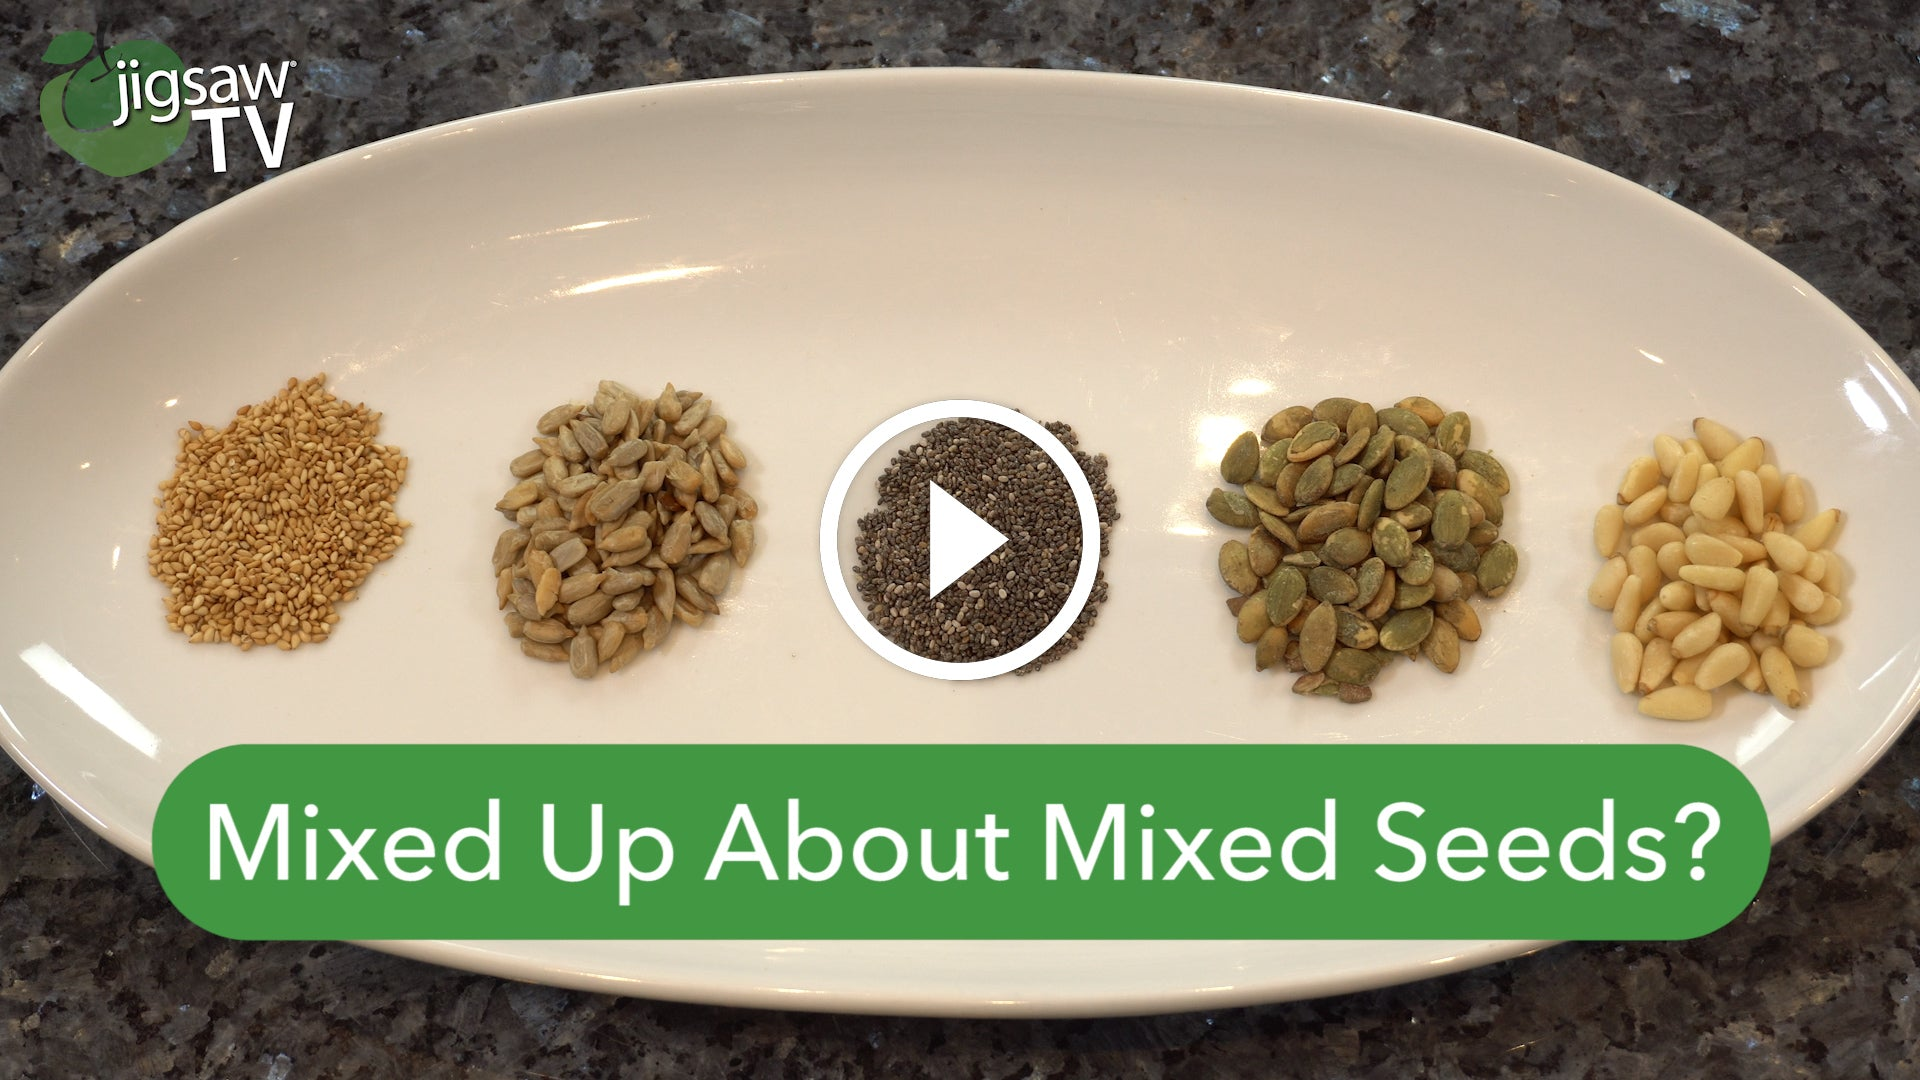 Mixed Up About Mixed Seeds?